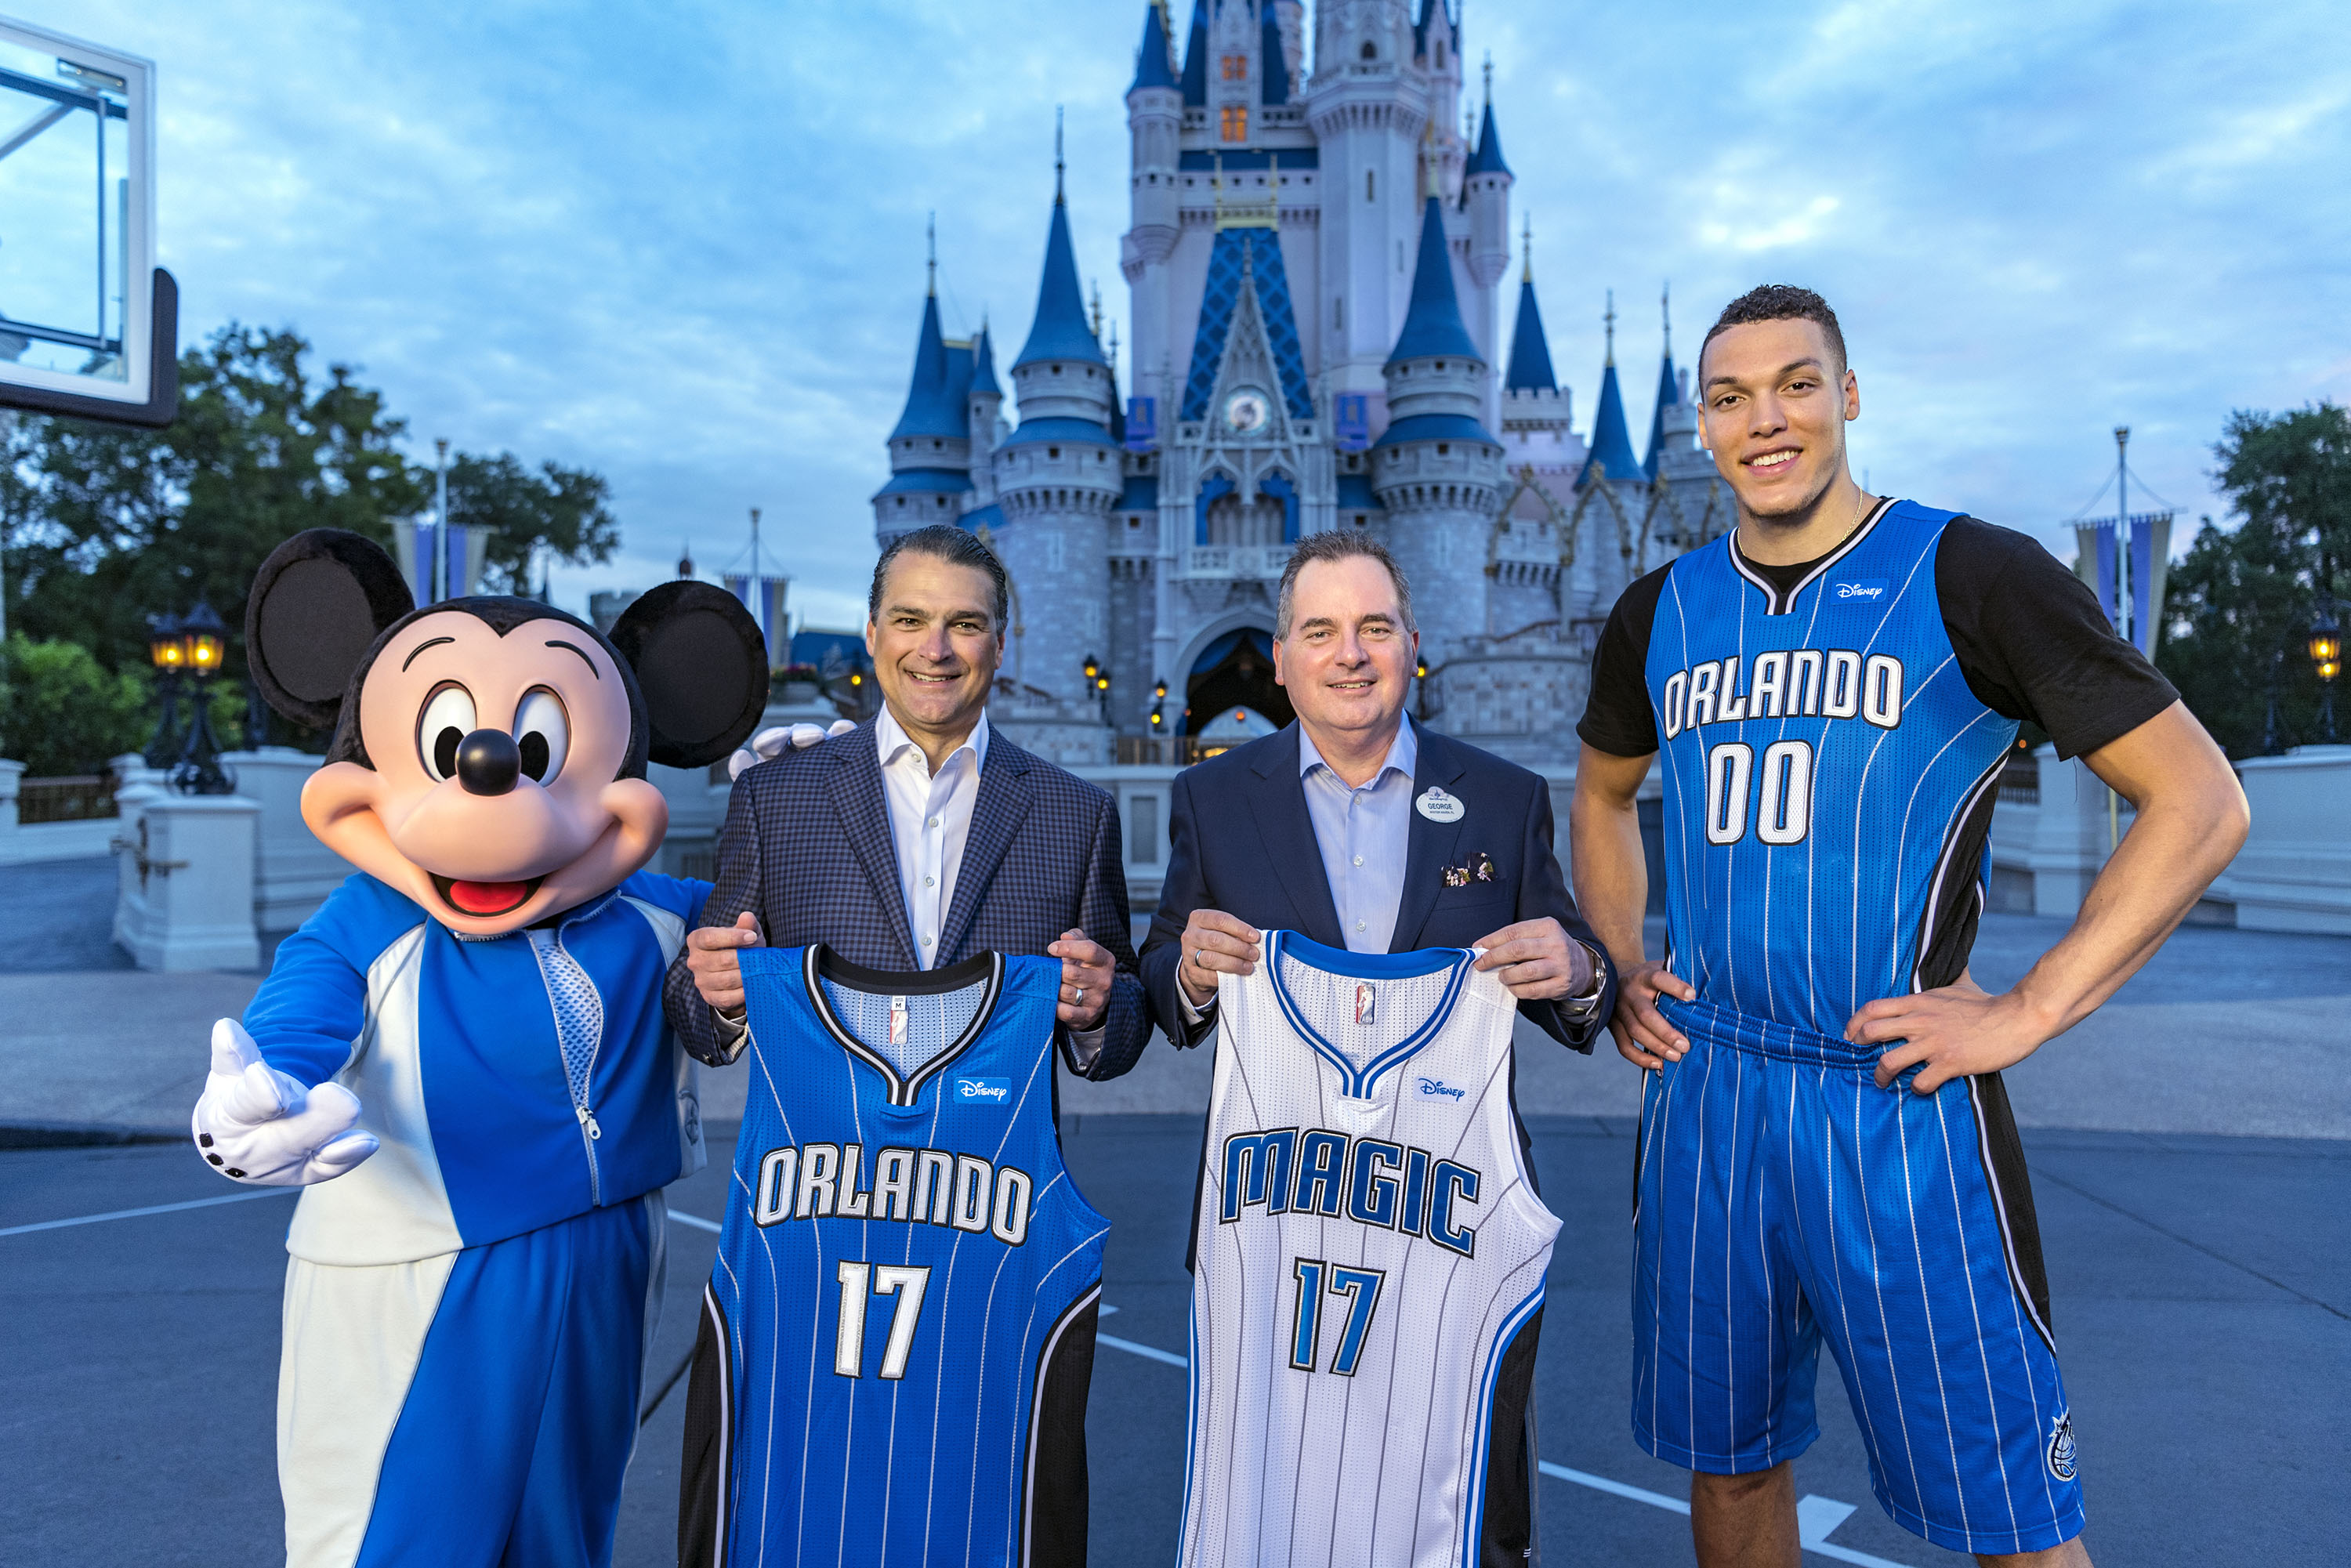 buy online 1fd28 44232 Walt Disney World Becomes Orlando Magic's First Jersey Sponsor